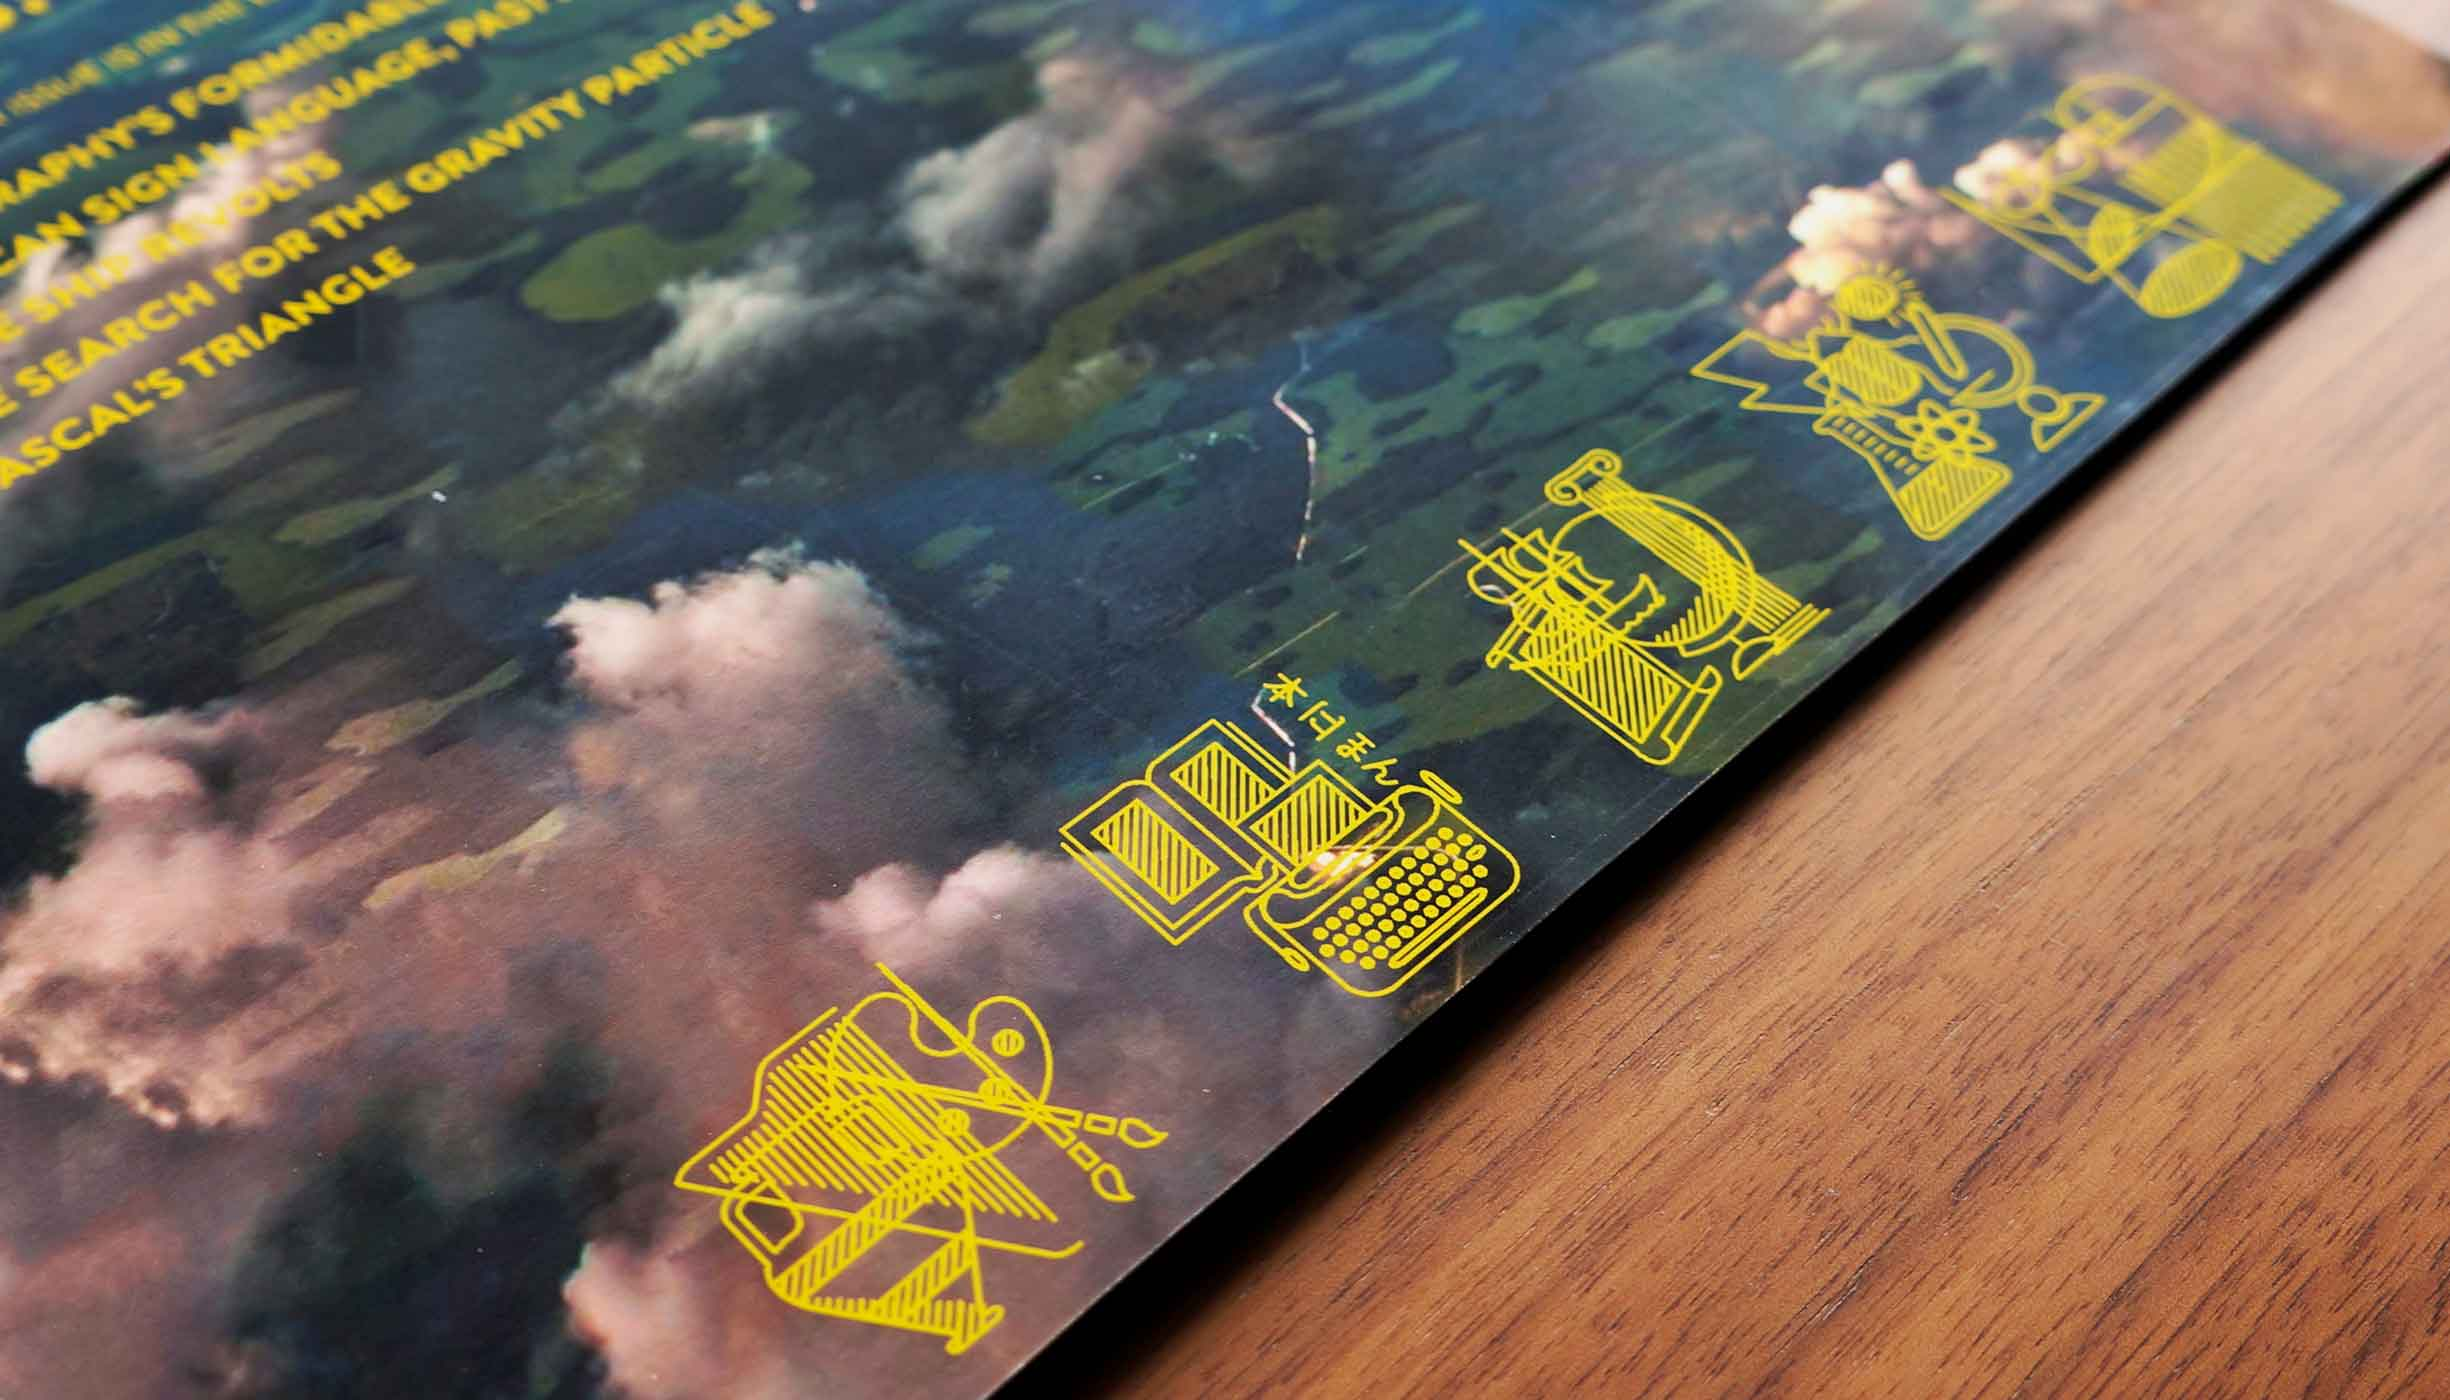 A the section's icons laid out together on the inside of the back cover, atop an aerial photo.